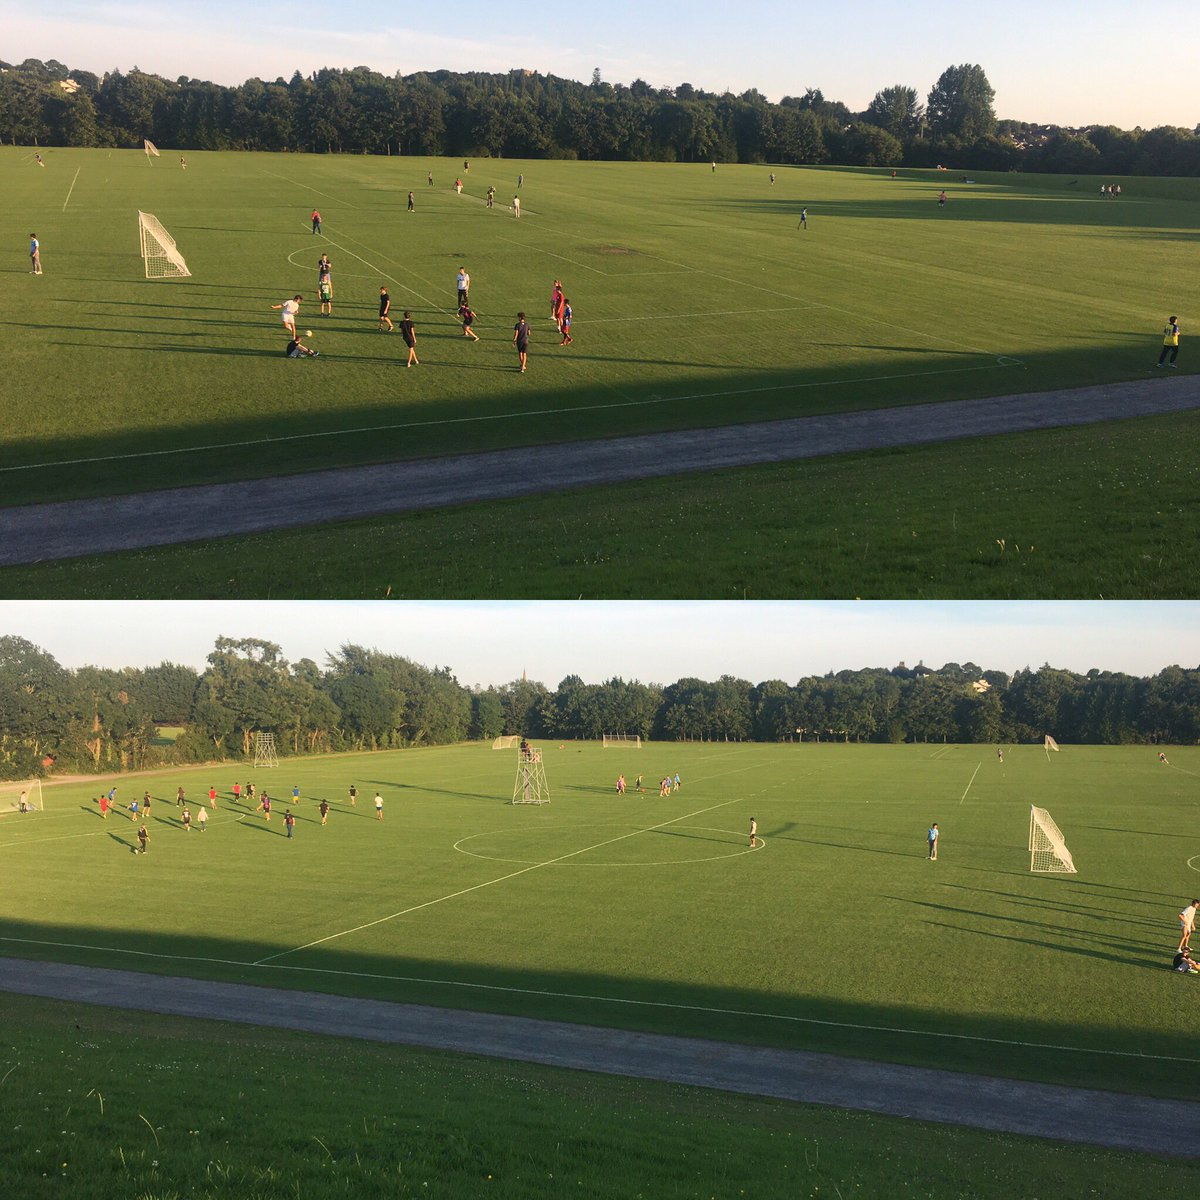 Great to see so many using @ULimsport pitches this fine evening #community #local #limerick #ul @UL #summer<br>http://pic.twitter.com/77Z9OESbxW